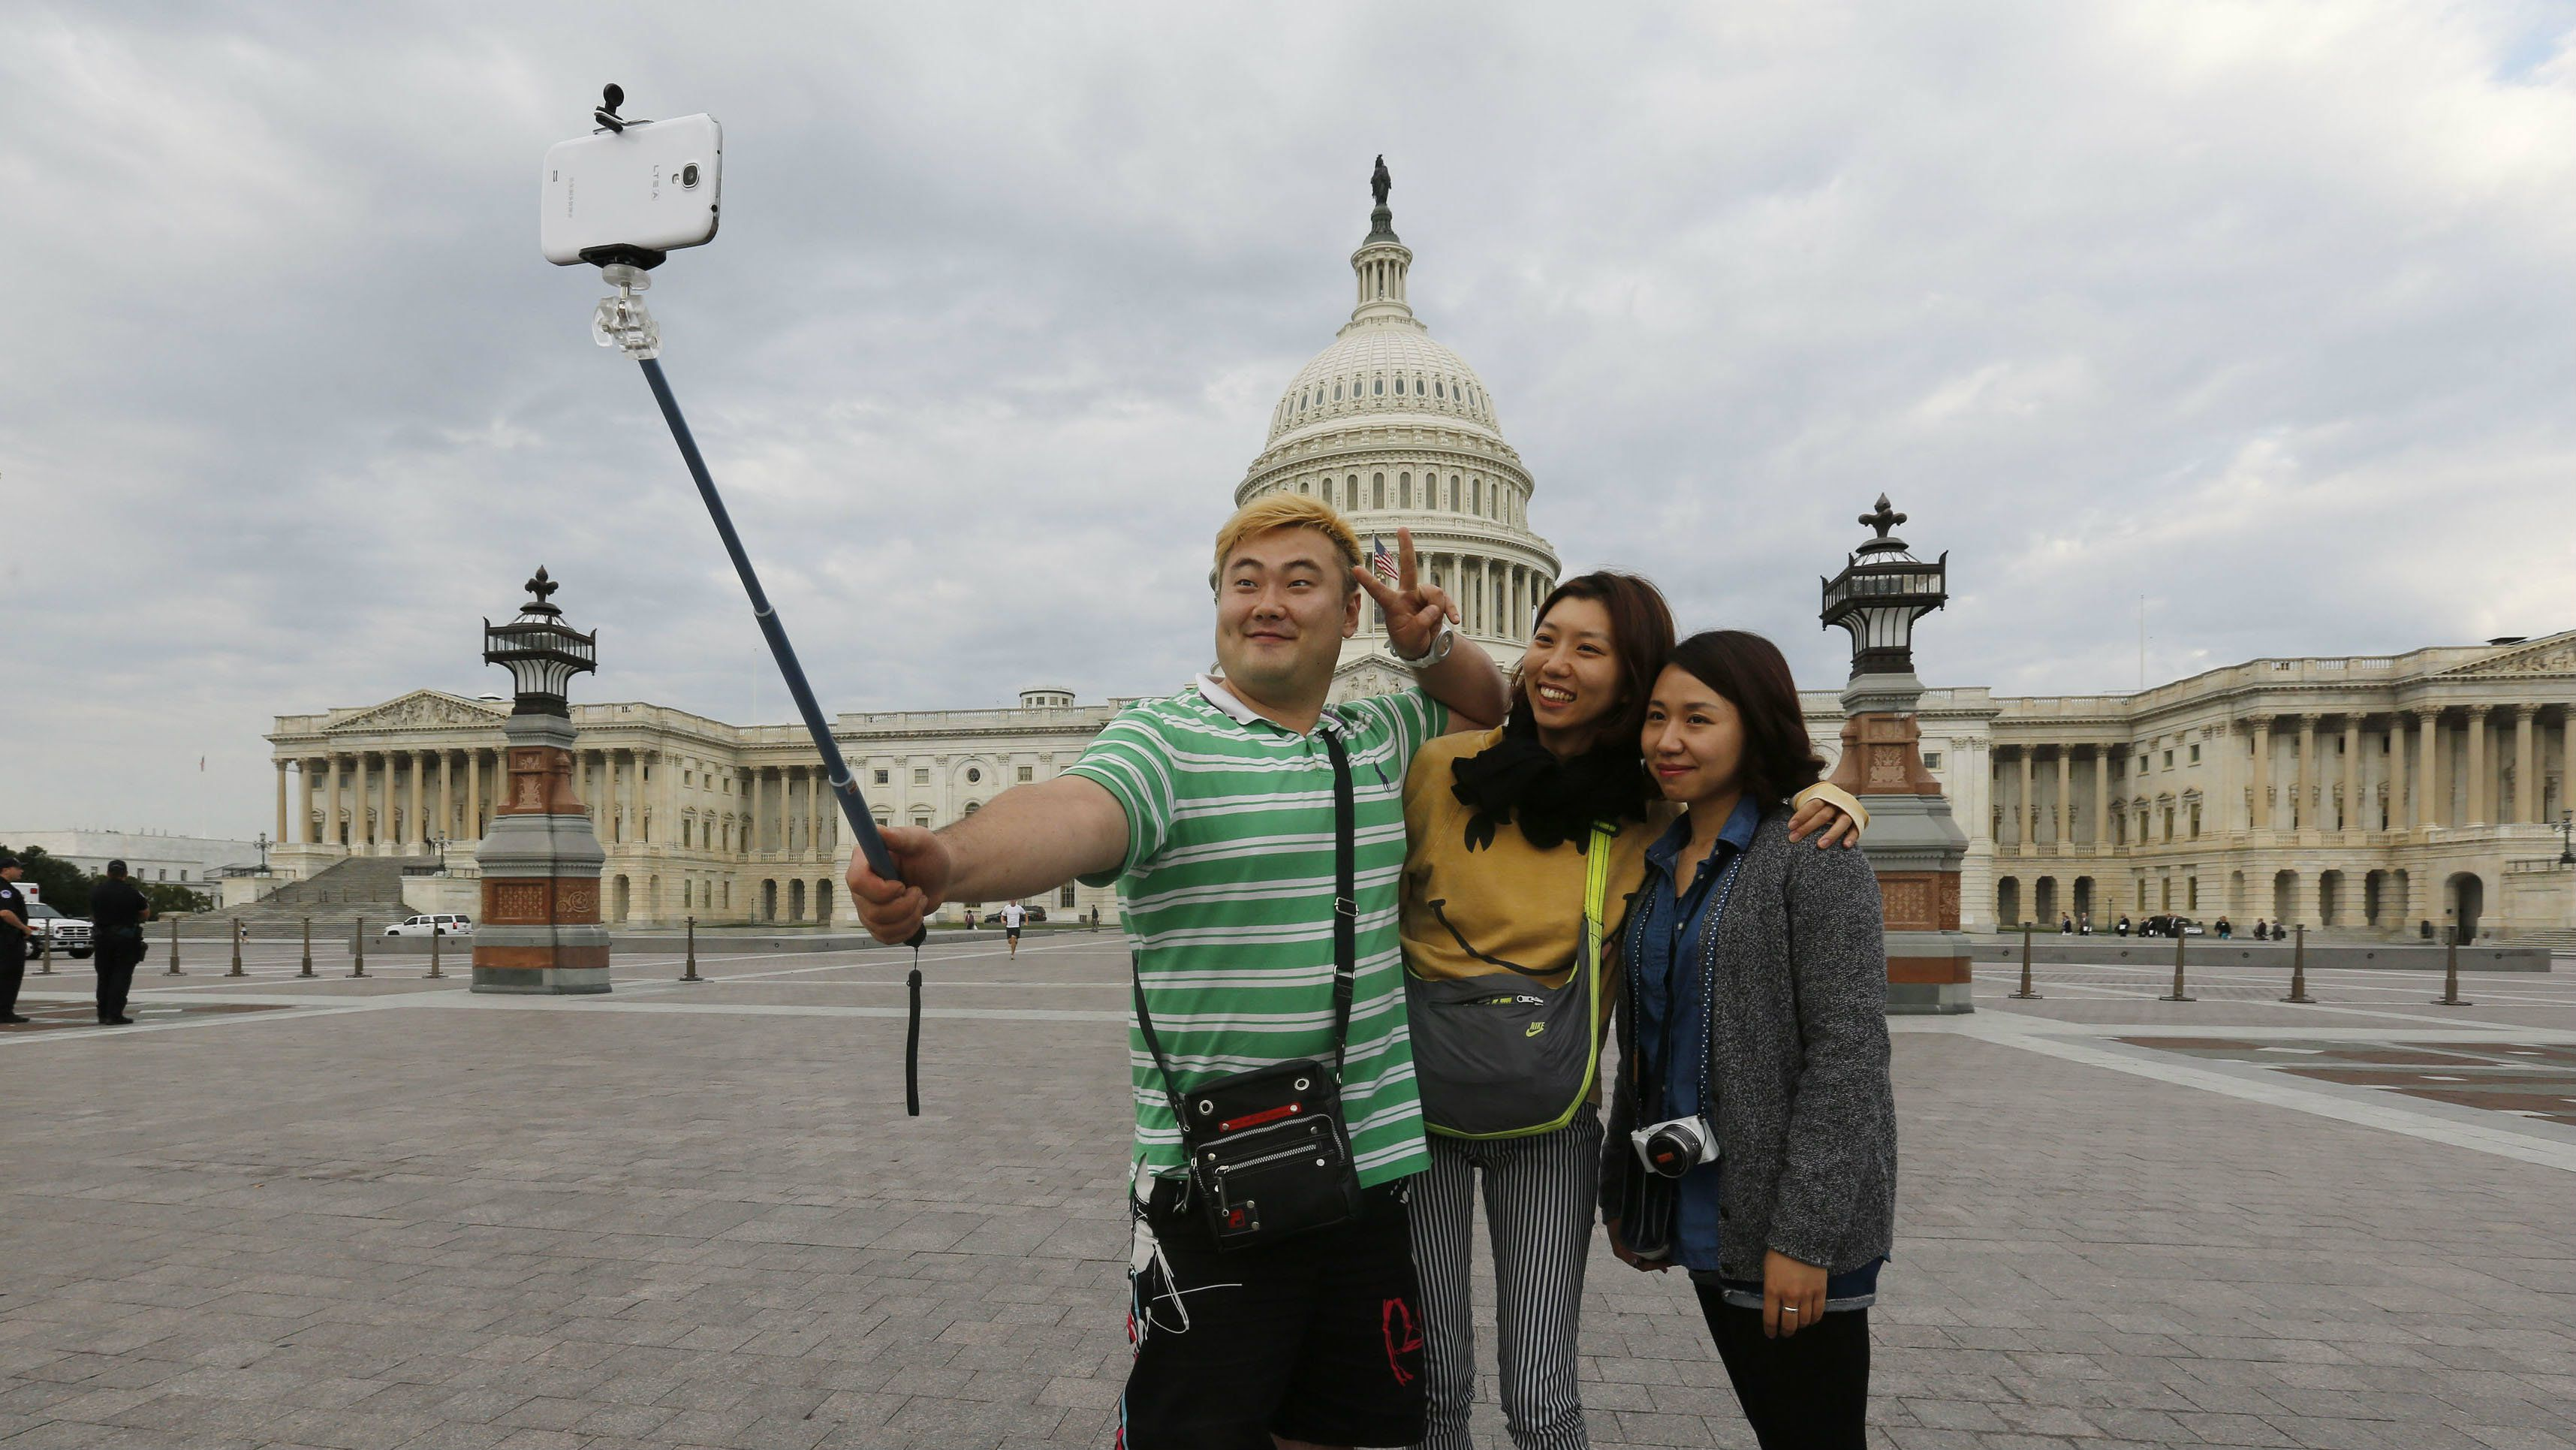 South Korean tourists (L-R) Heemok Ann, Eunyi Ji, and Mijung Jung take their own picture in front of the U.S. Capitol dome on Capitol Hill in Washington.